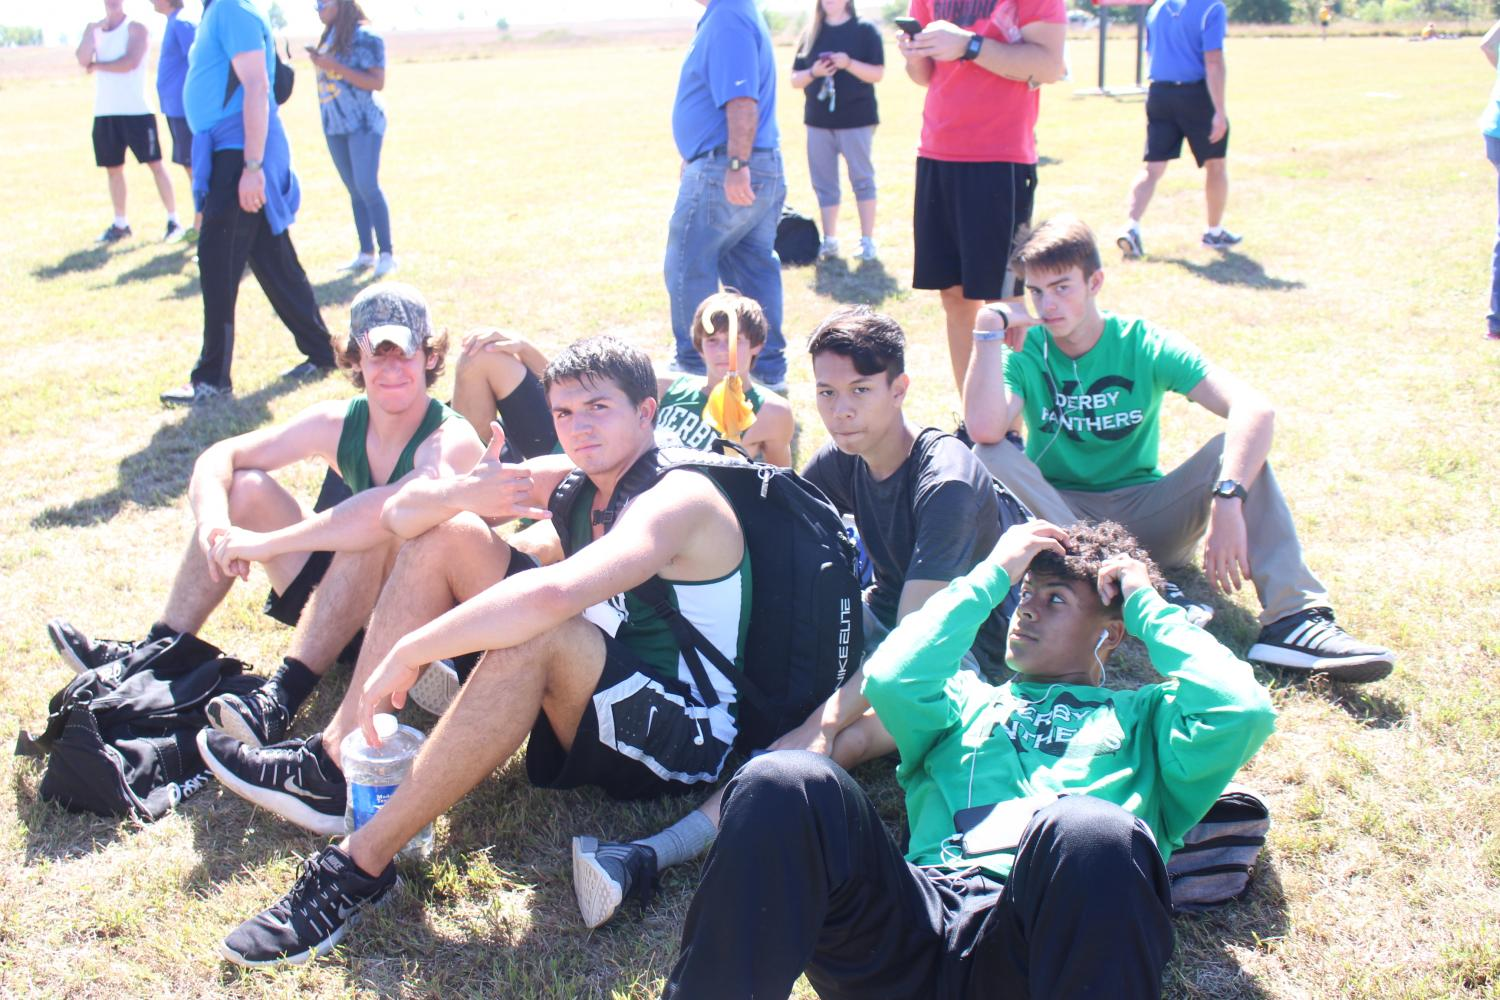 The cross country team waits for all the awards to be passed out at the El Dorado meet on Saturday, Oct. 7th.